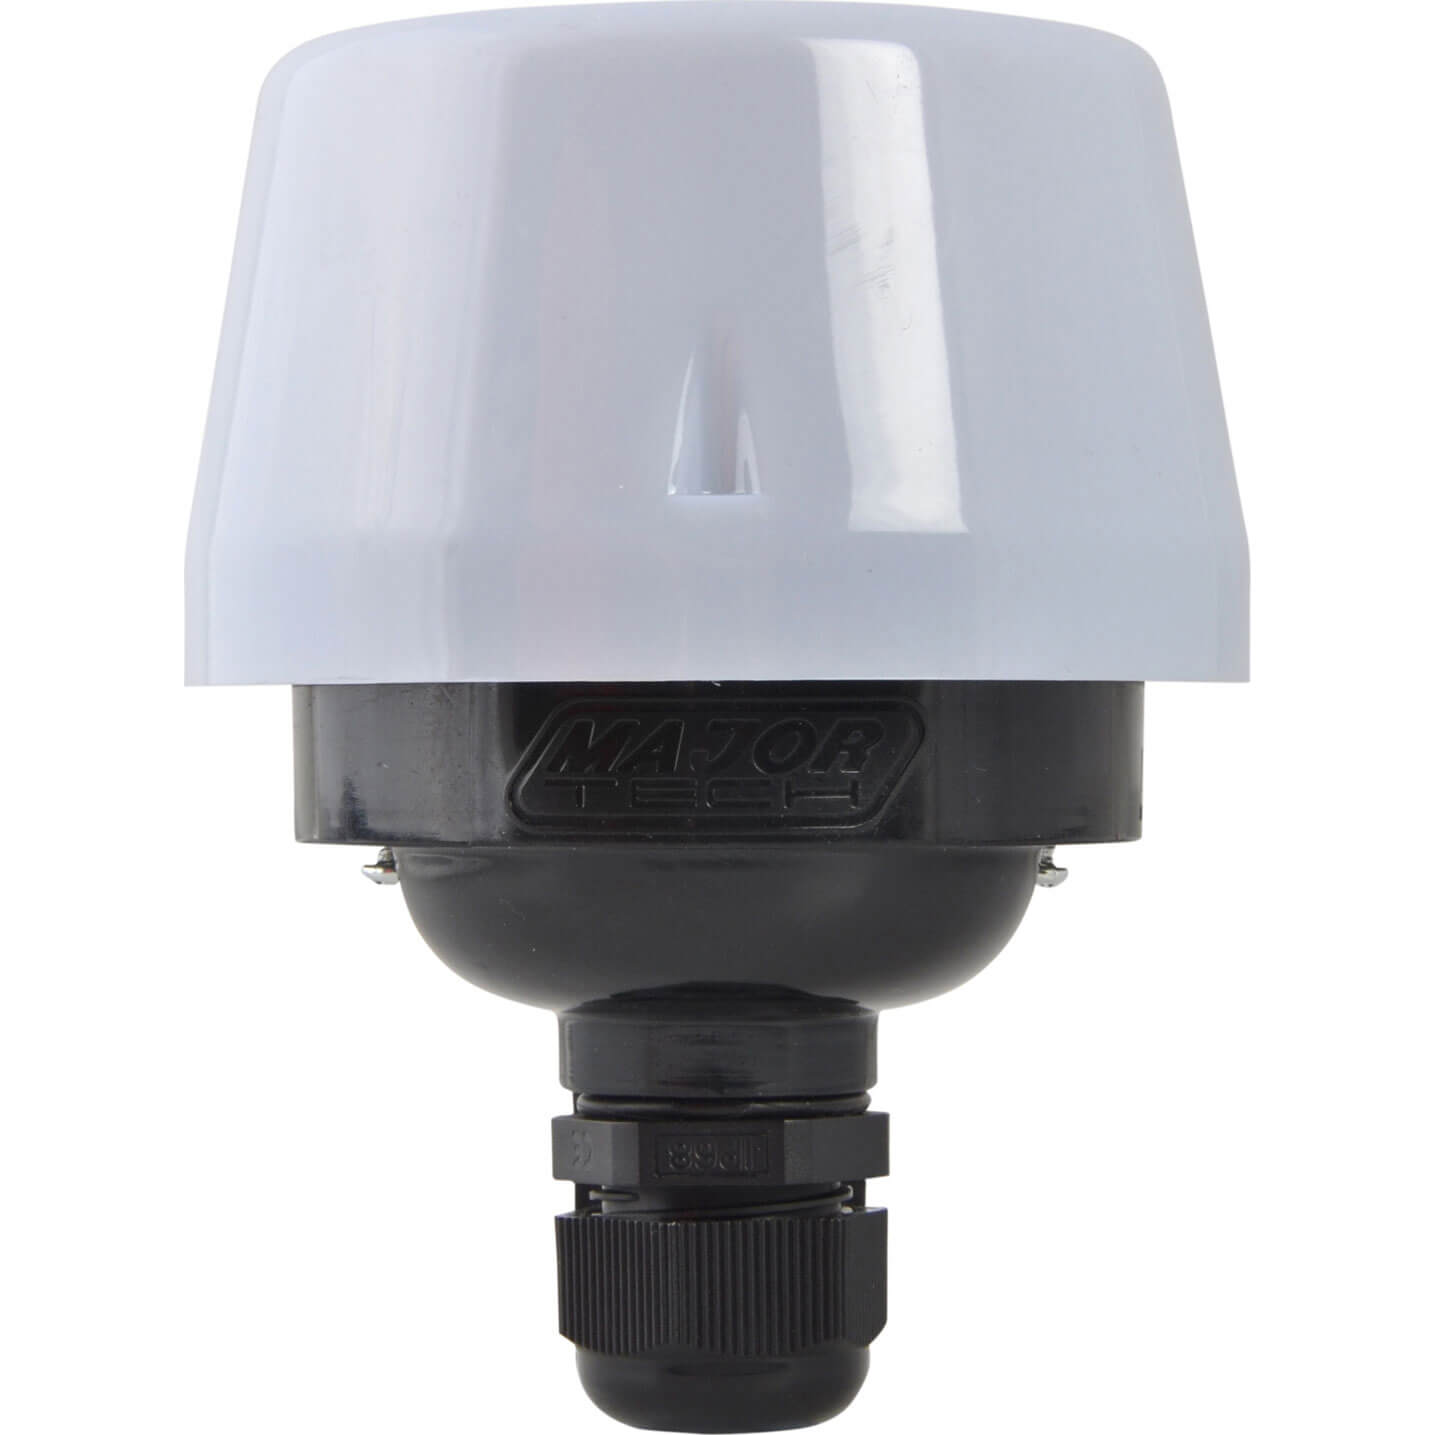 Image of Byron 1890 Twilight Sensor Switch in White